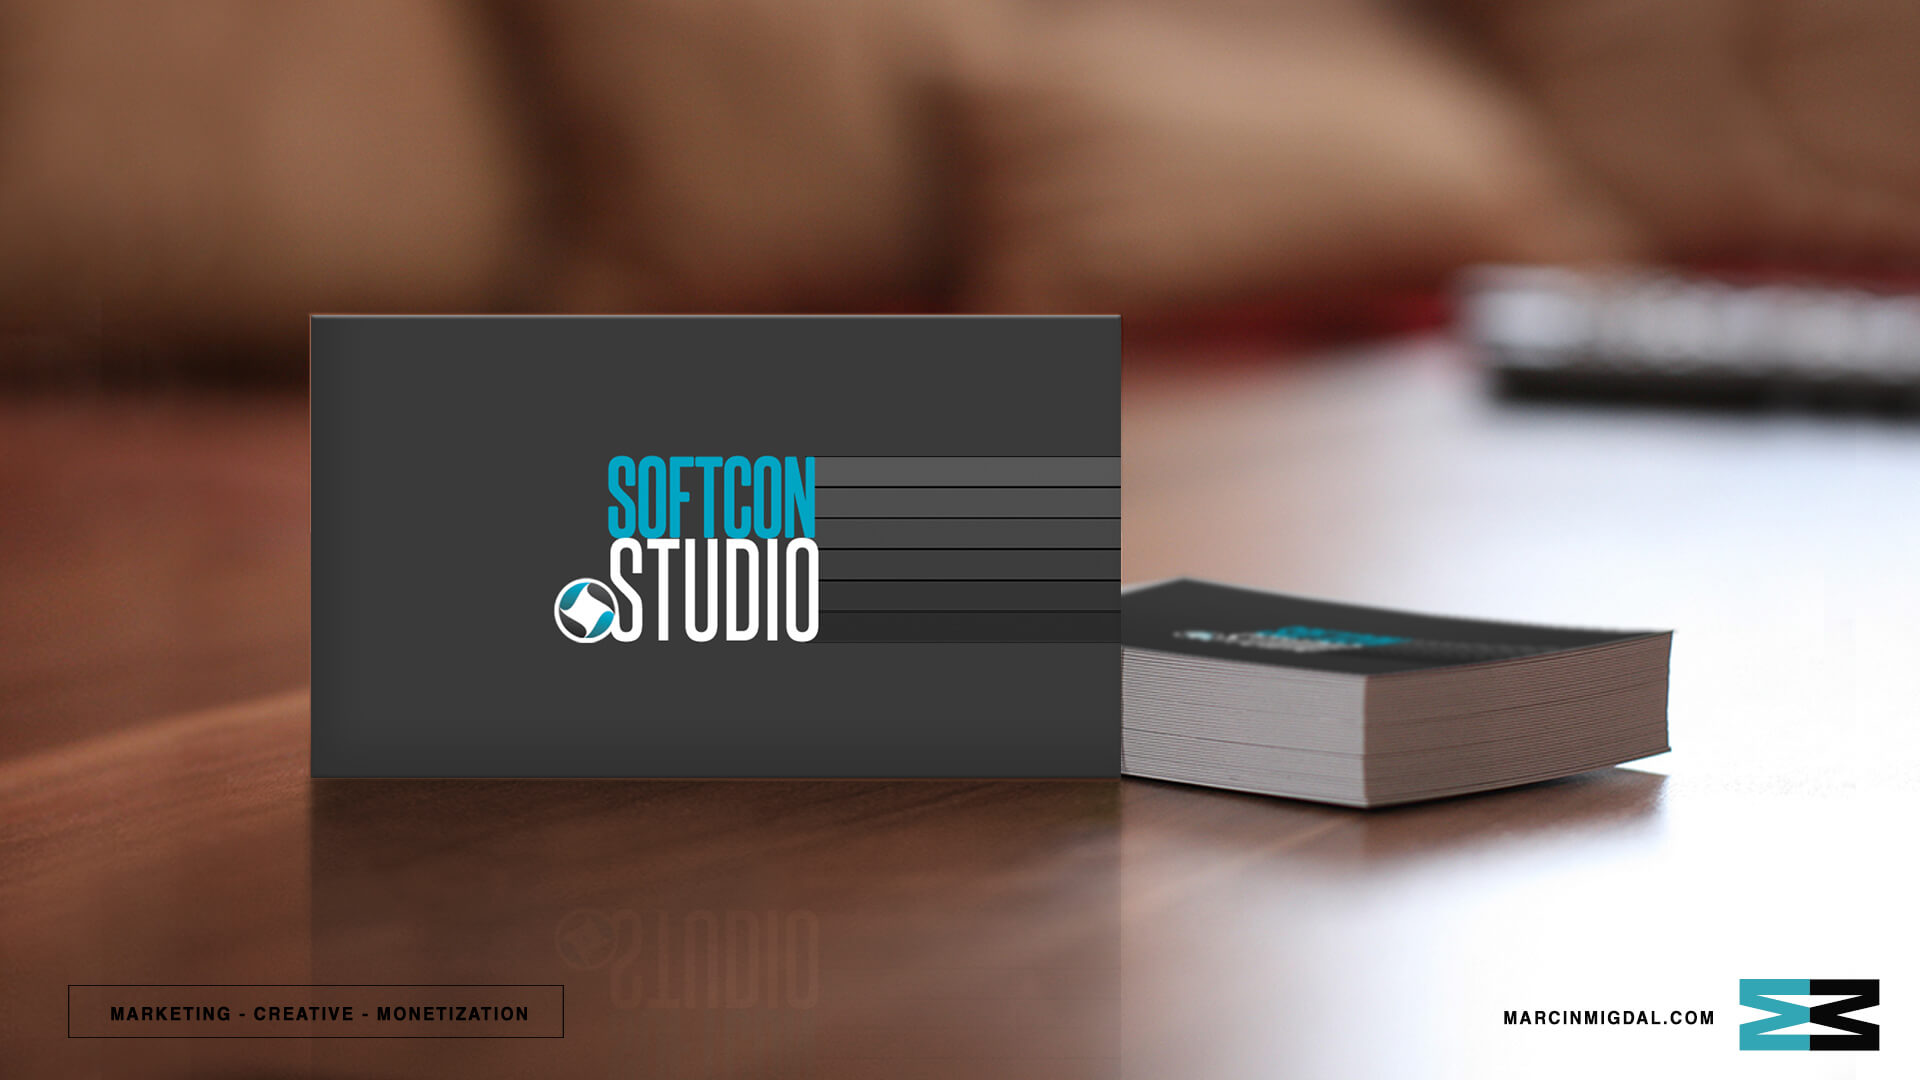 creative-director-marketing-director-marcin-migdal-custom-business-card-design-25a